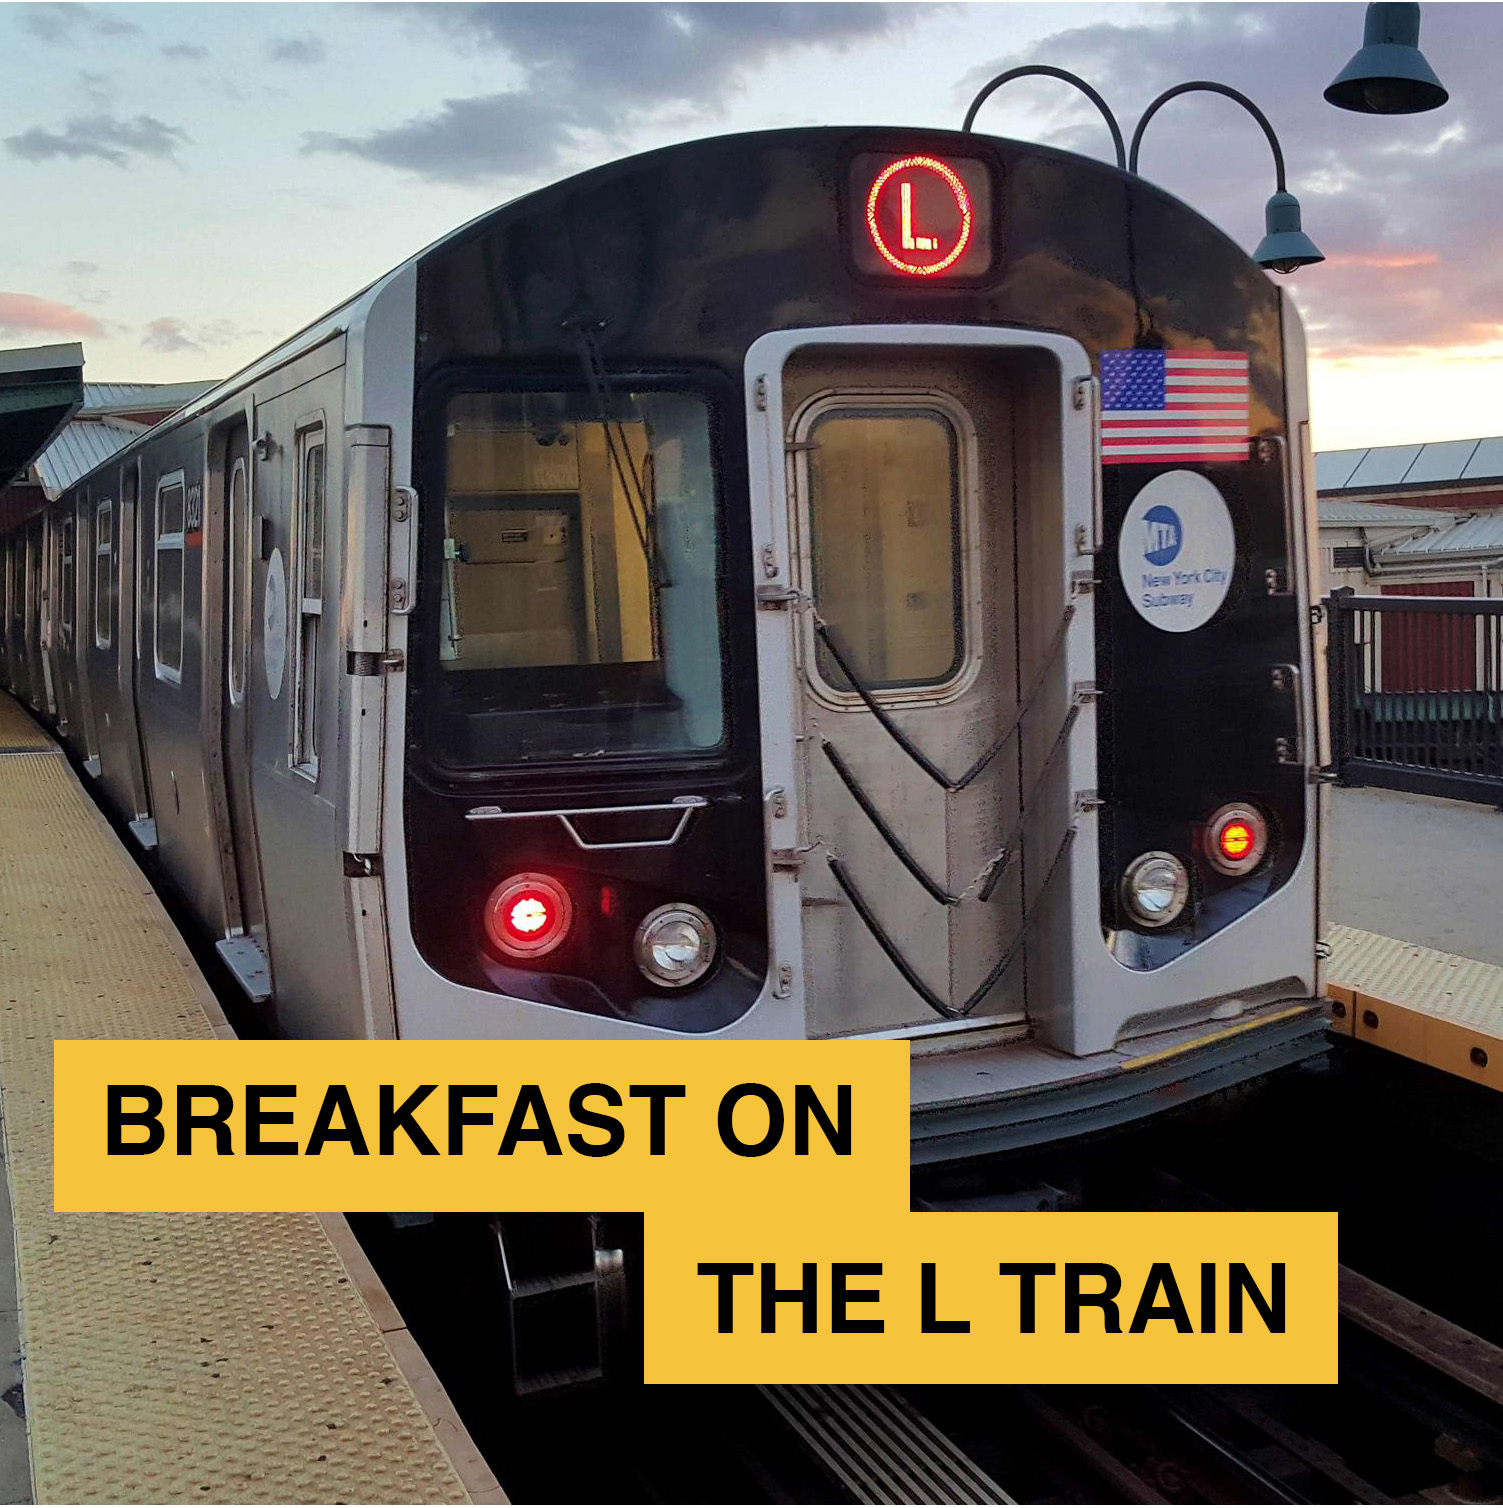 From stop to stop, we explore the L train through the lens of food